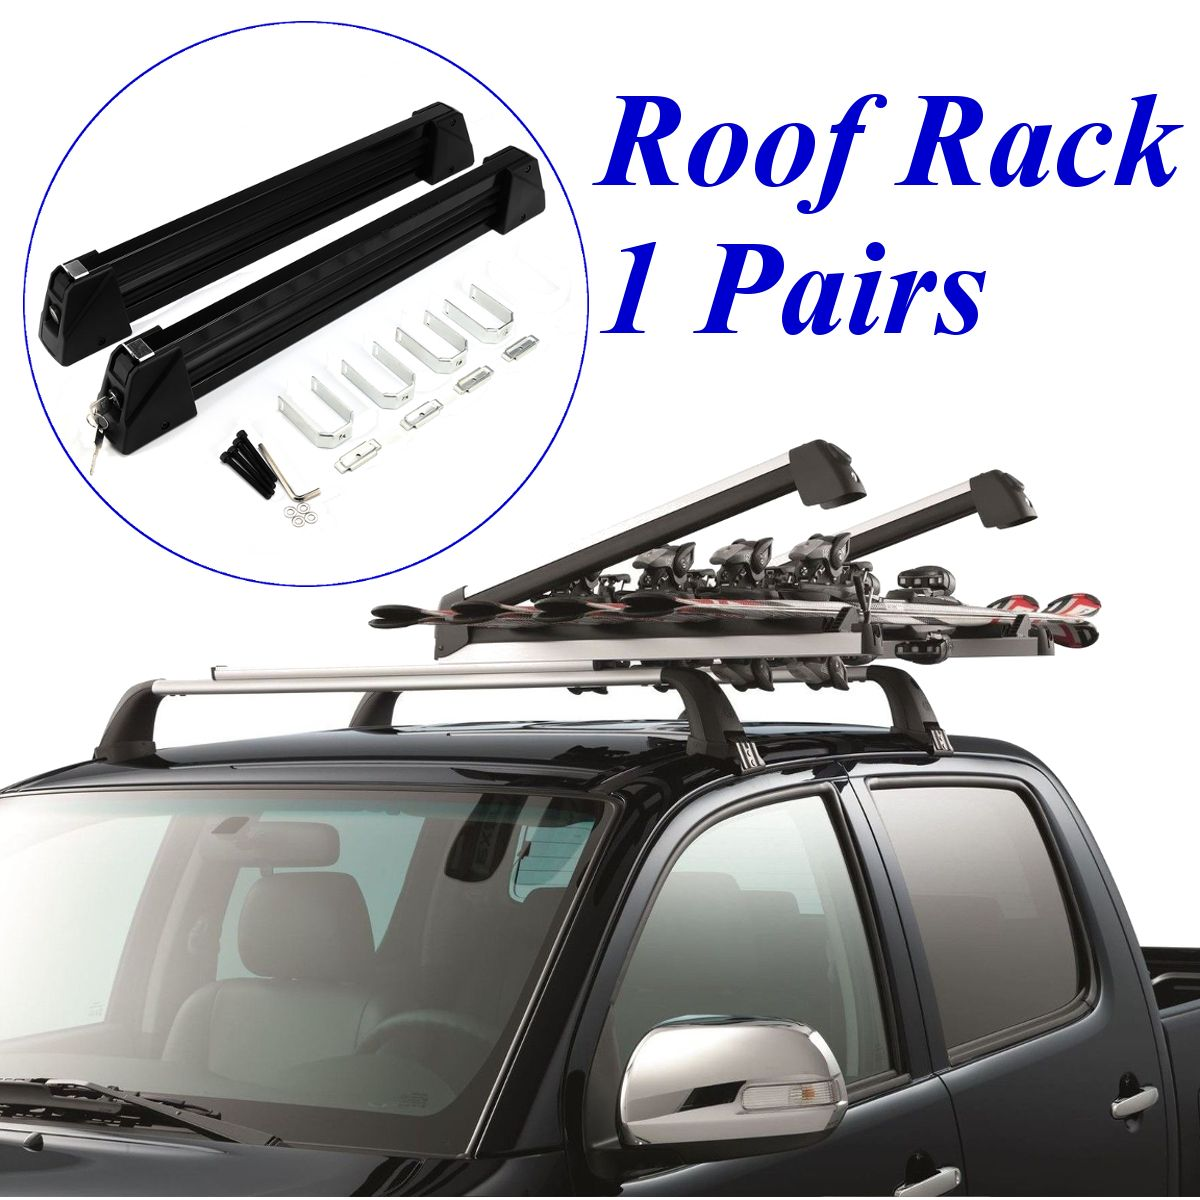 1 Pair Aluminum Alloy Car Auto Luggage Stand Roof Rack Lockable Ski Snow Board Carrier Holders Roof Rack Mounted Max Load 70Kg